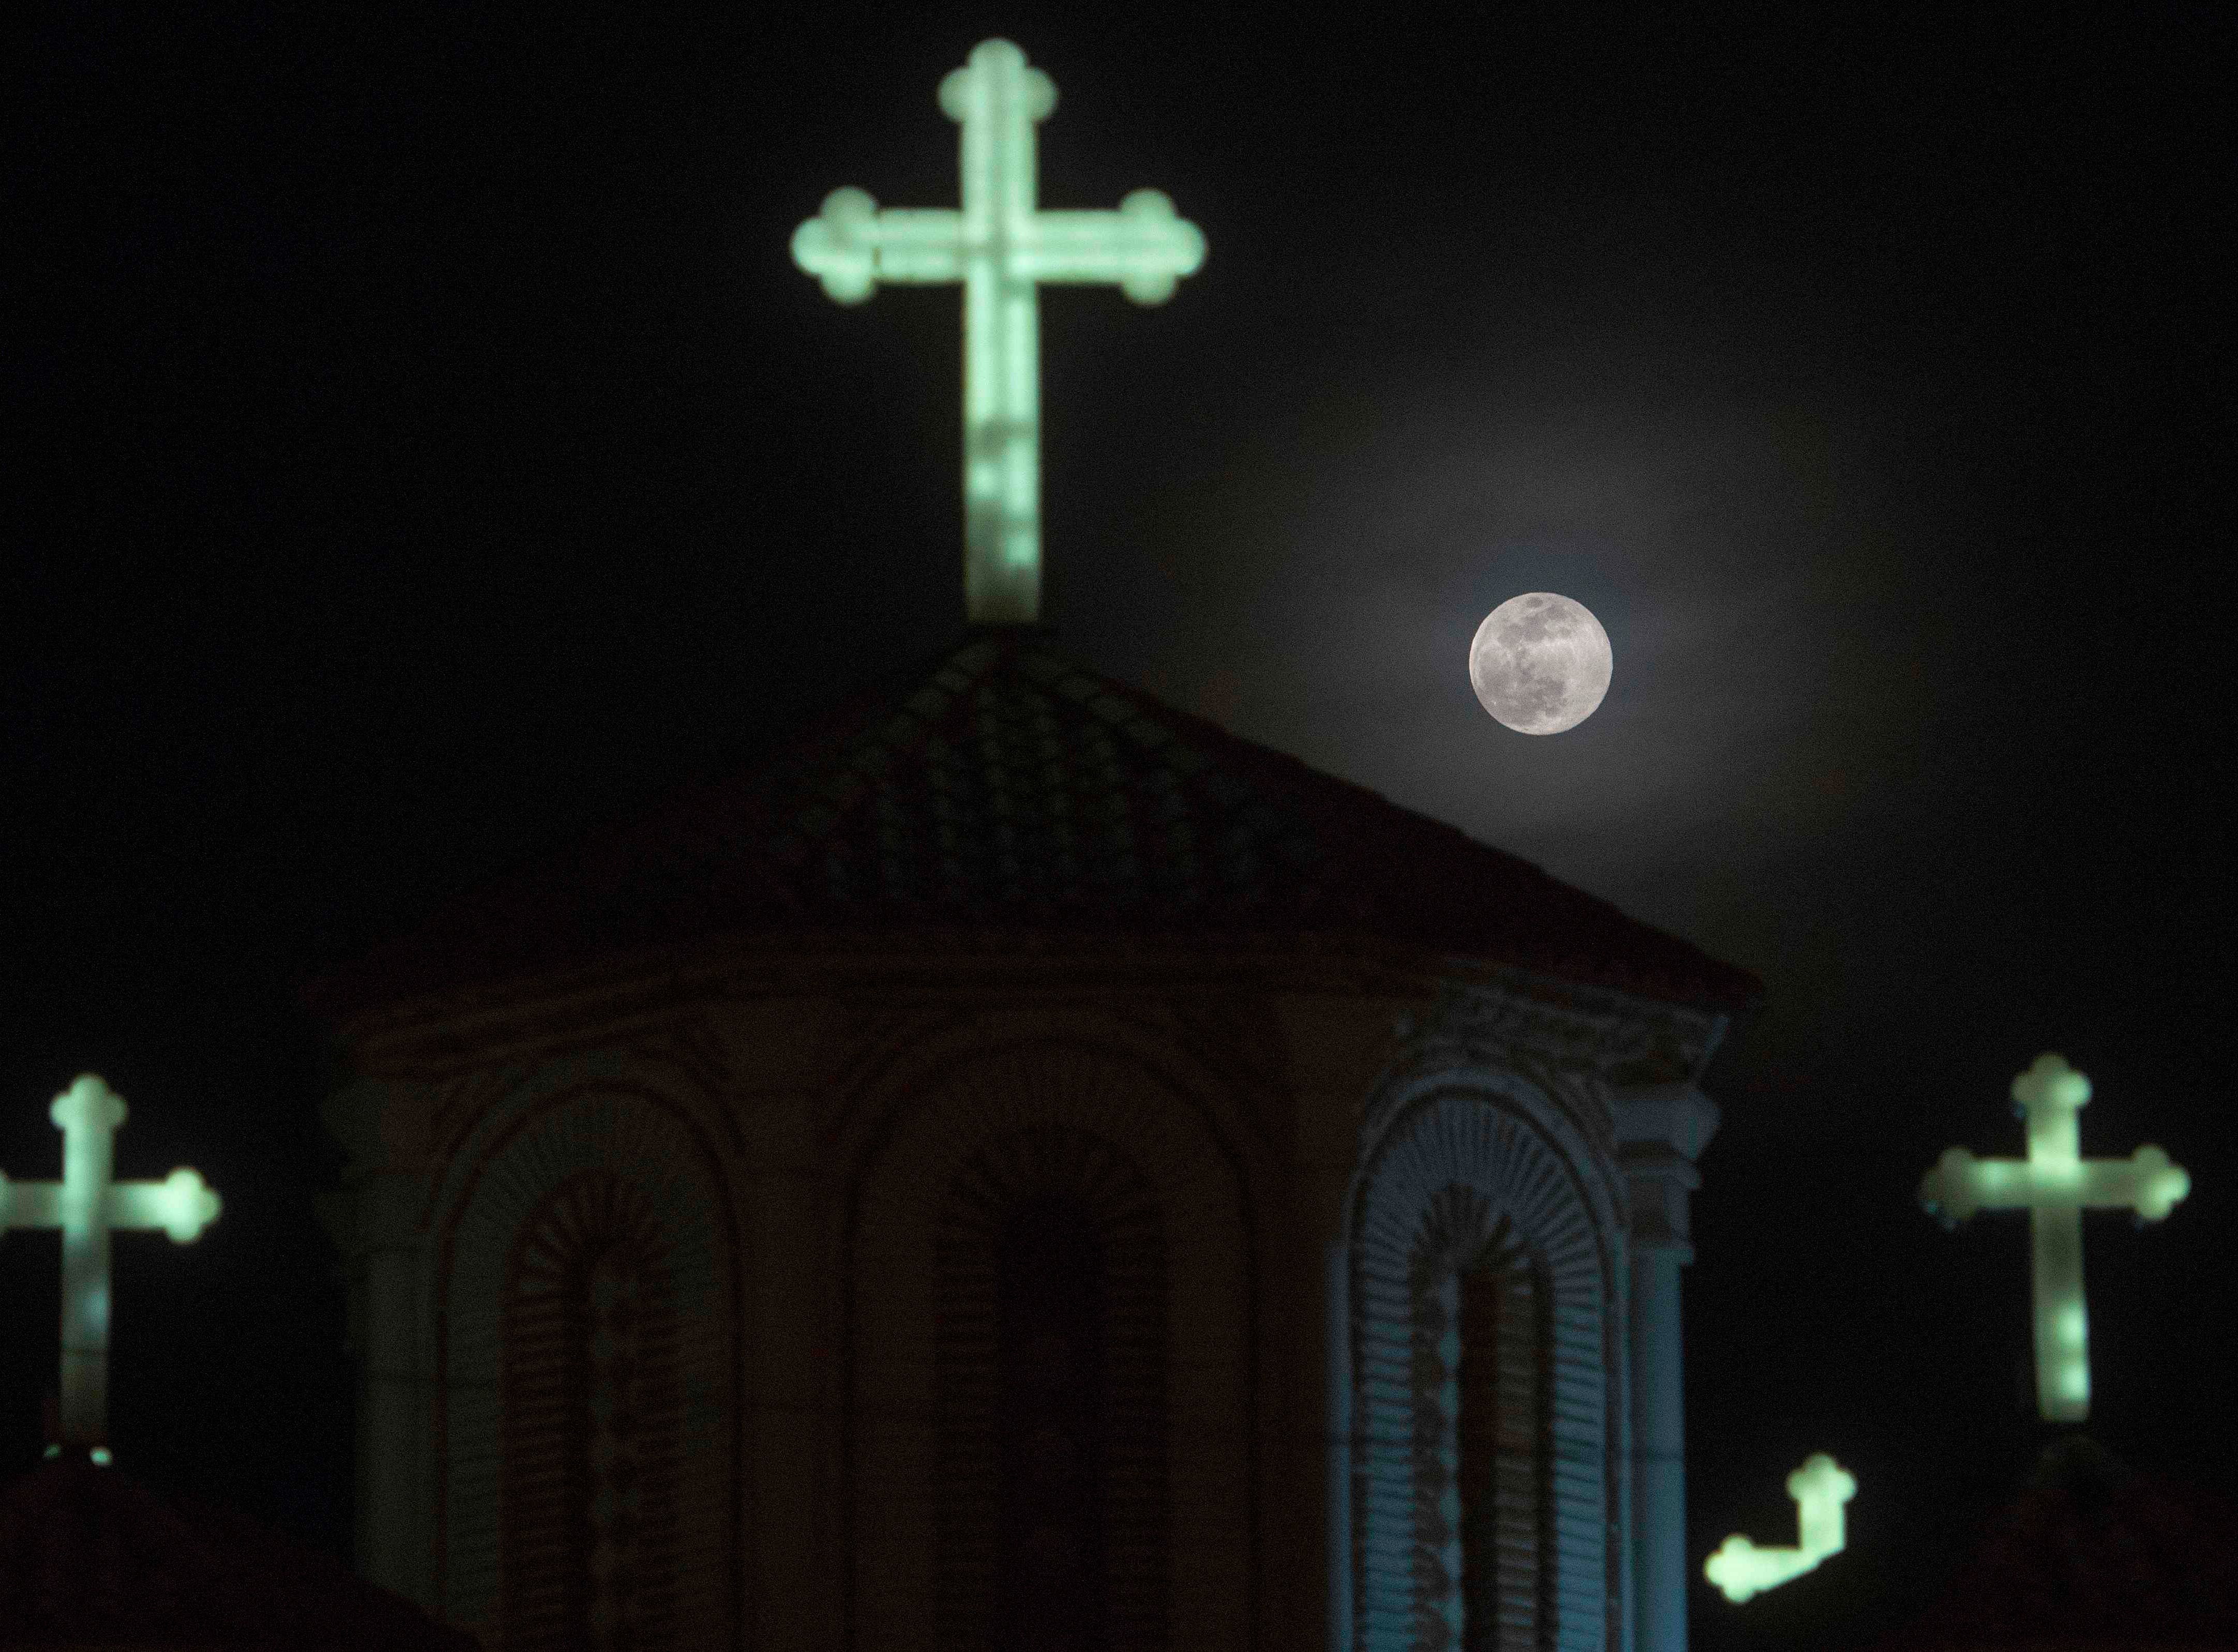 A full moon, announcing the end of the winter season, rises over a Church in Skopje, North Macedonia on March 20, 2019.